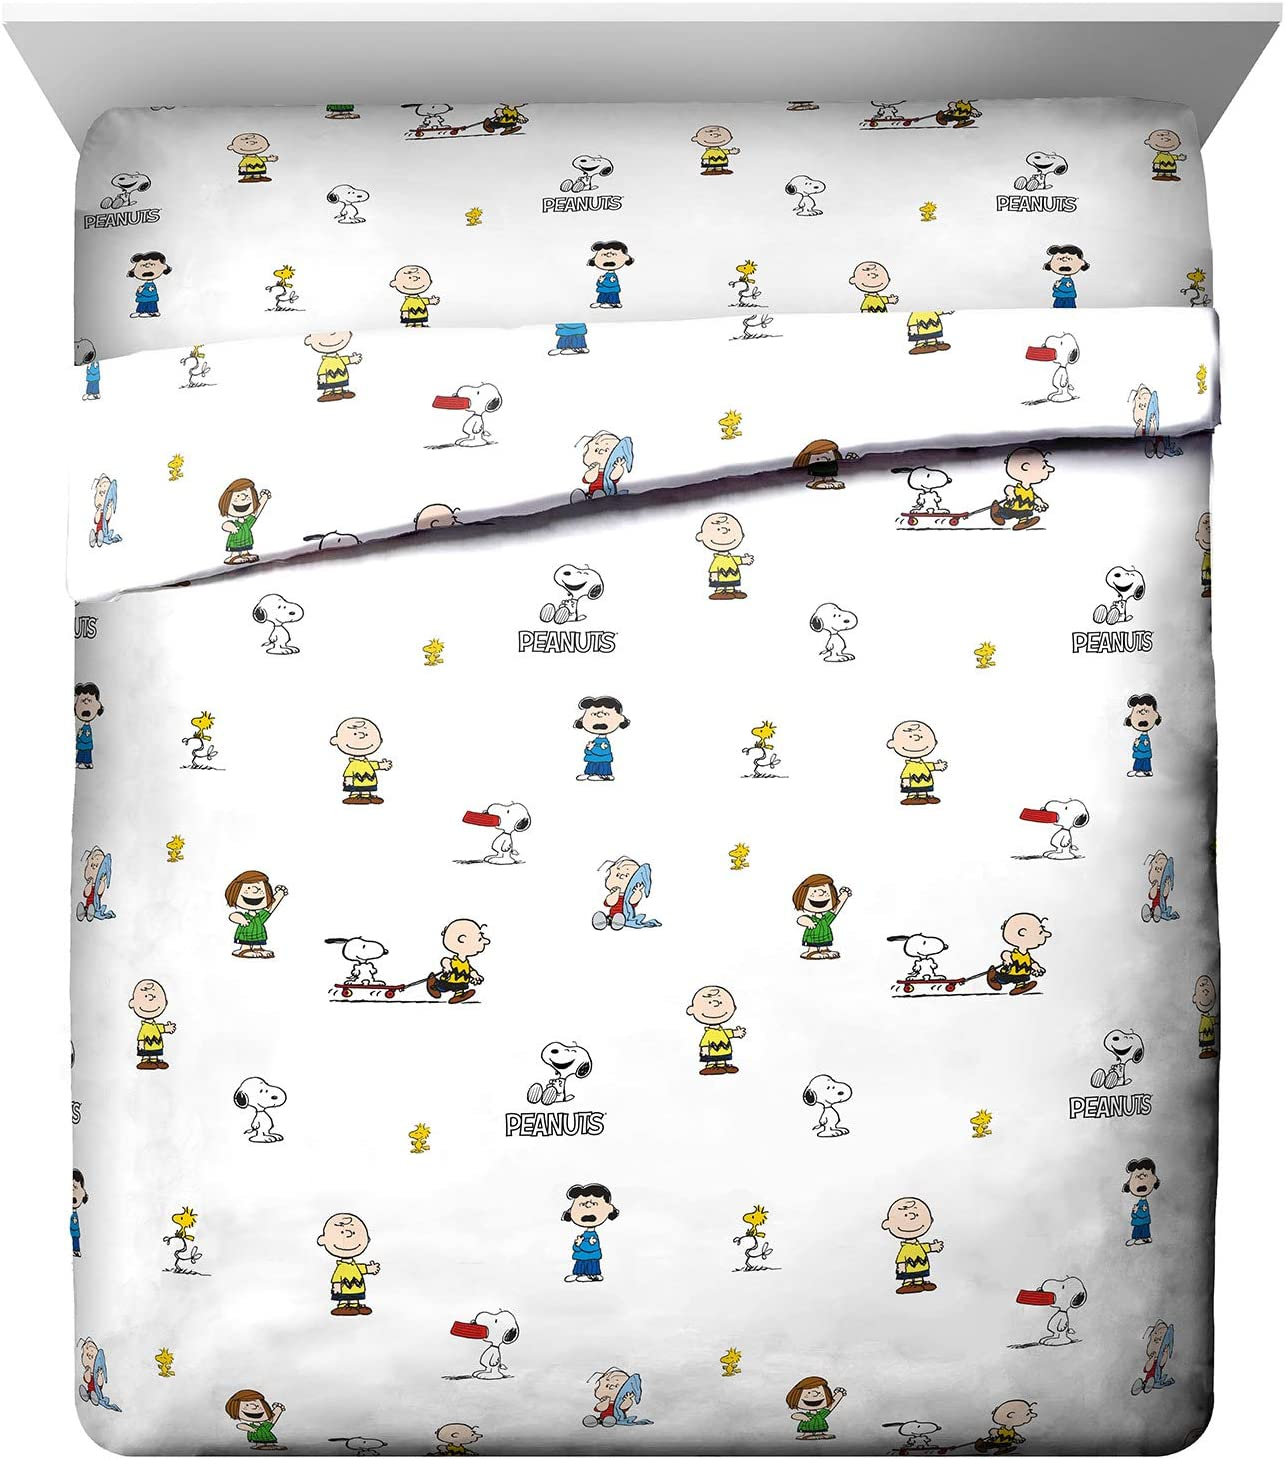 Jay Franco Peanuts Best Friends Queen Sheet Set - 4 Piece Set Super Soft and Cozy Kid's Bedding Features Snoopy & Charlie Brown - Fade Resistant Microfiber Sheets (Official Peanuts Product)